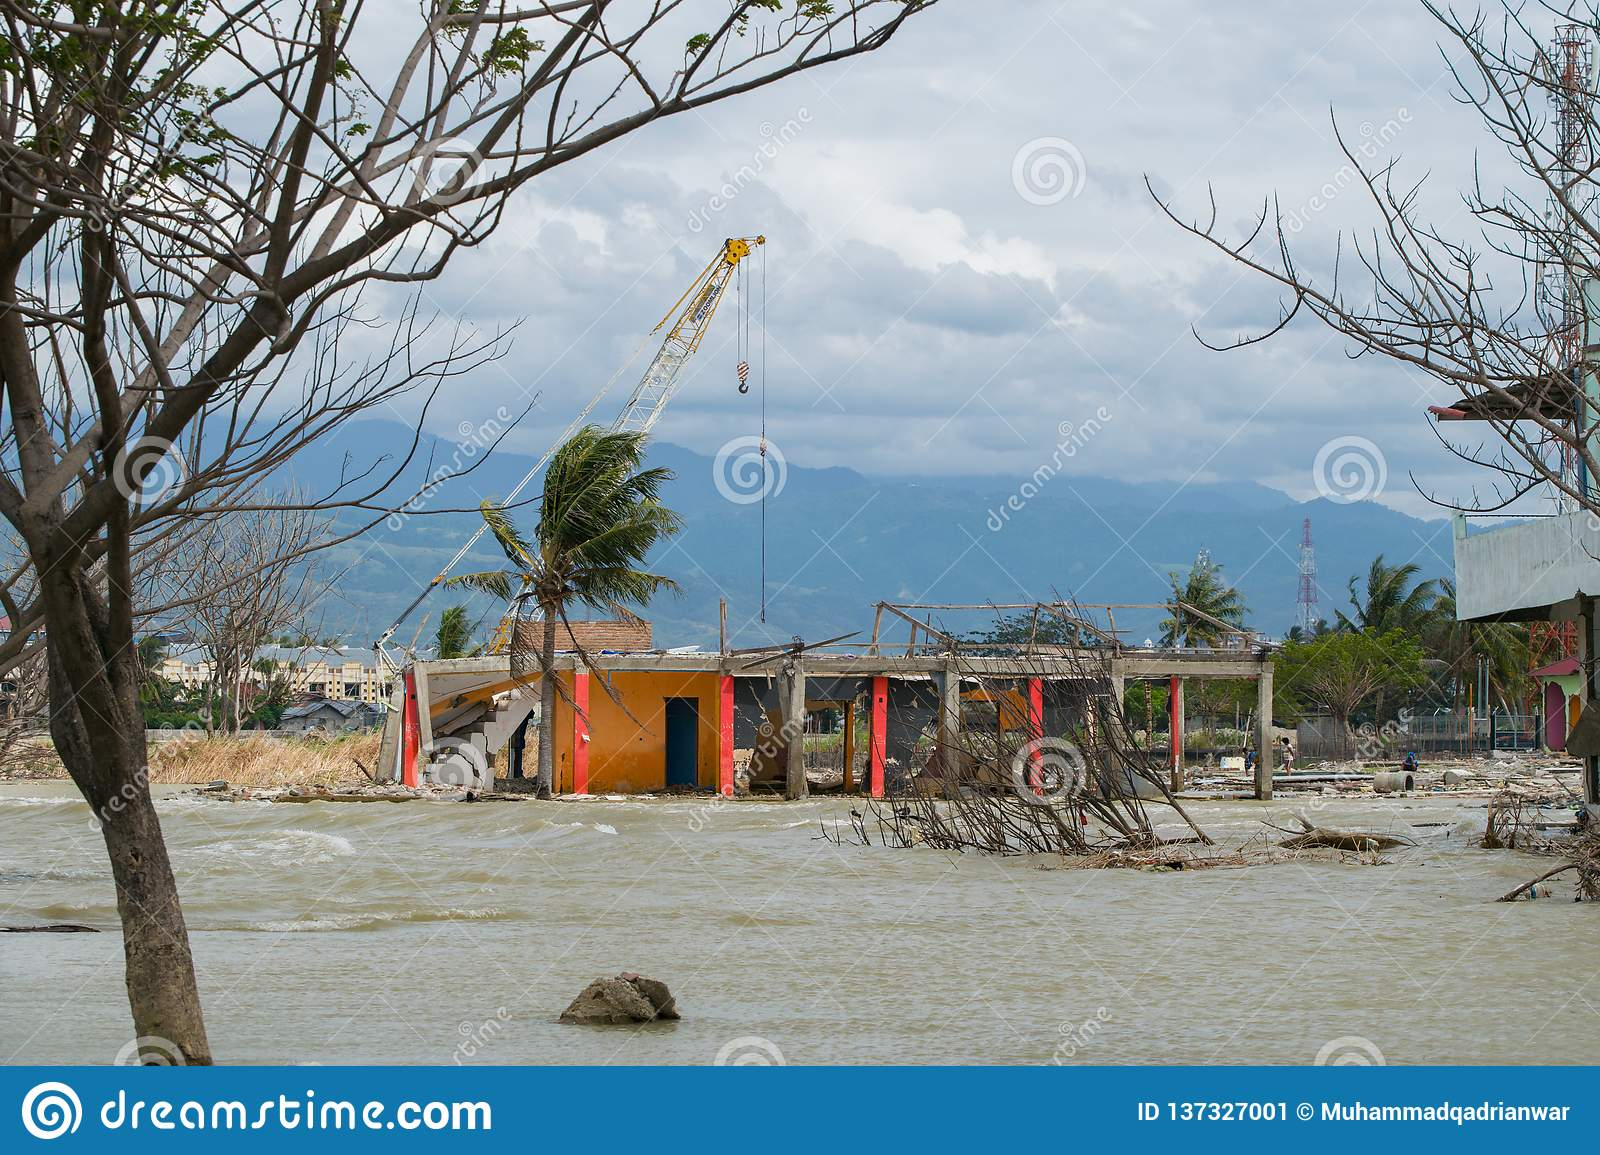 Cleaning Damaged Construction After Tsunami Palu, Central Sulawesi, Indonesia On 28 September 2018